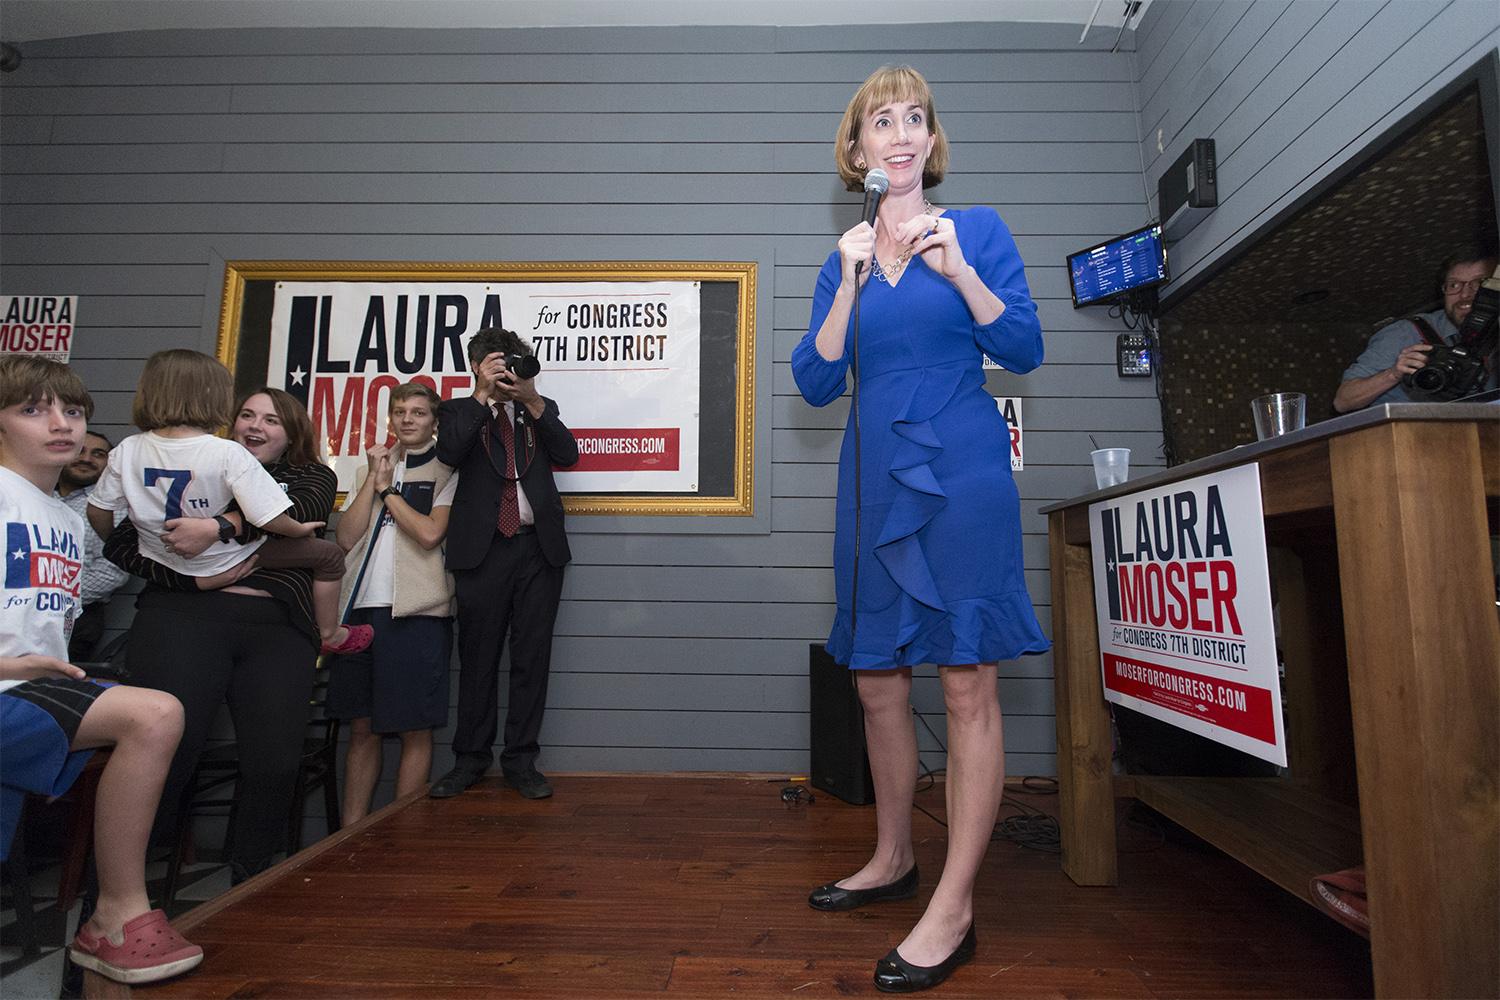 Democratic primary candidate for the 7th congressional district Laura Moser cheers with supporters at a watch party in Houston in Houston on Mar. 6, 2018.